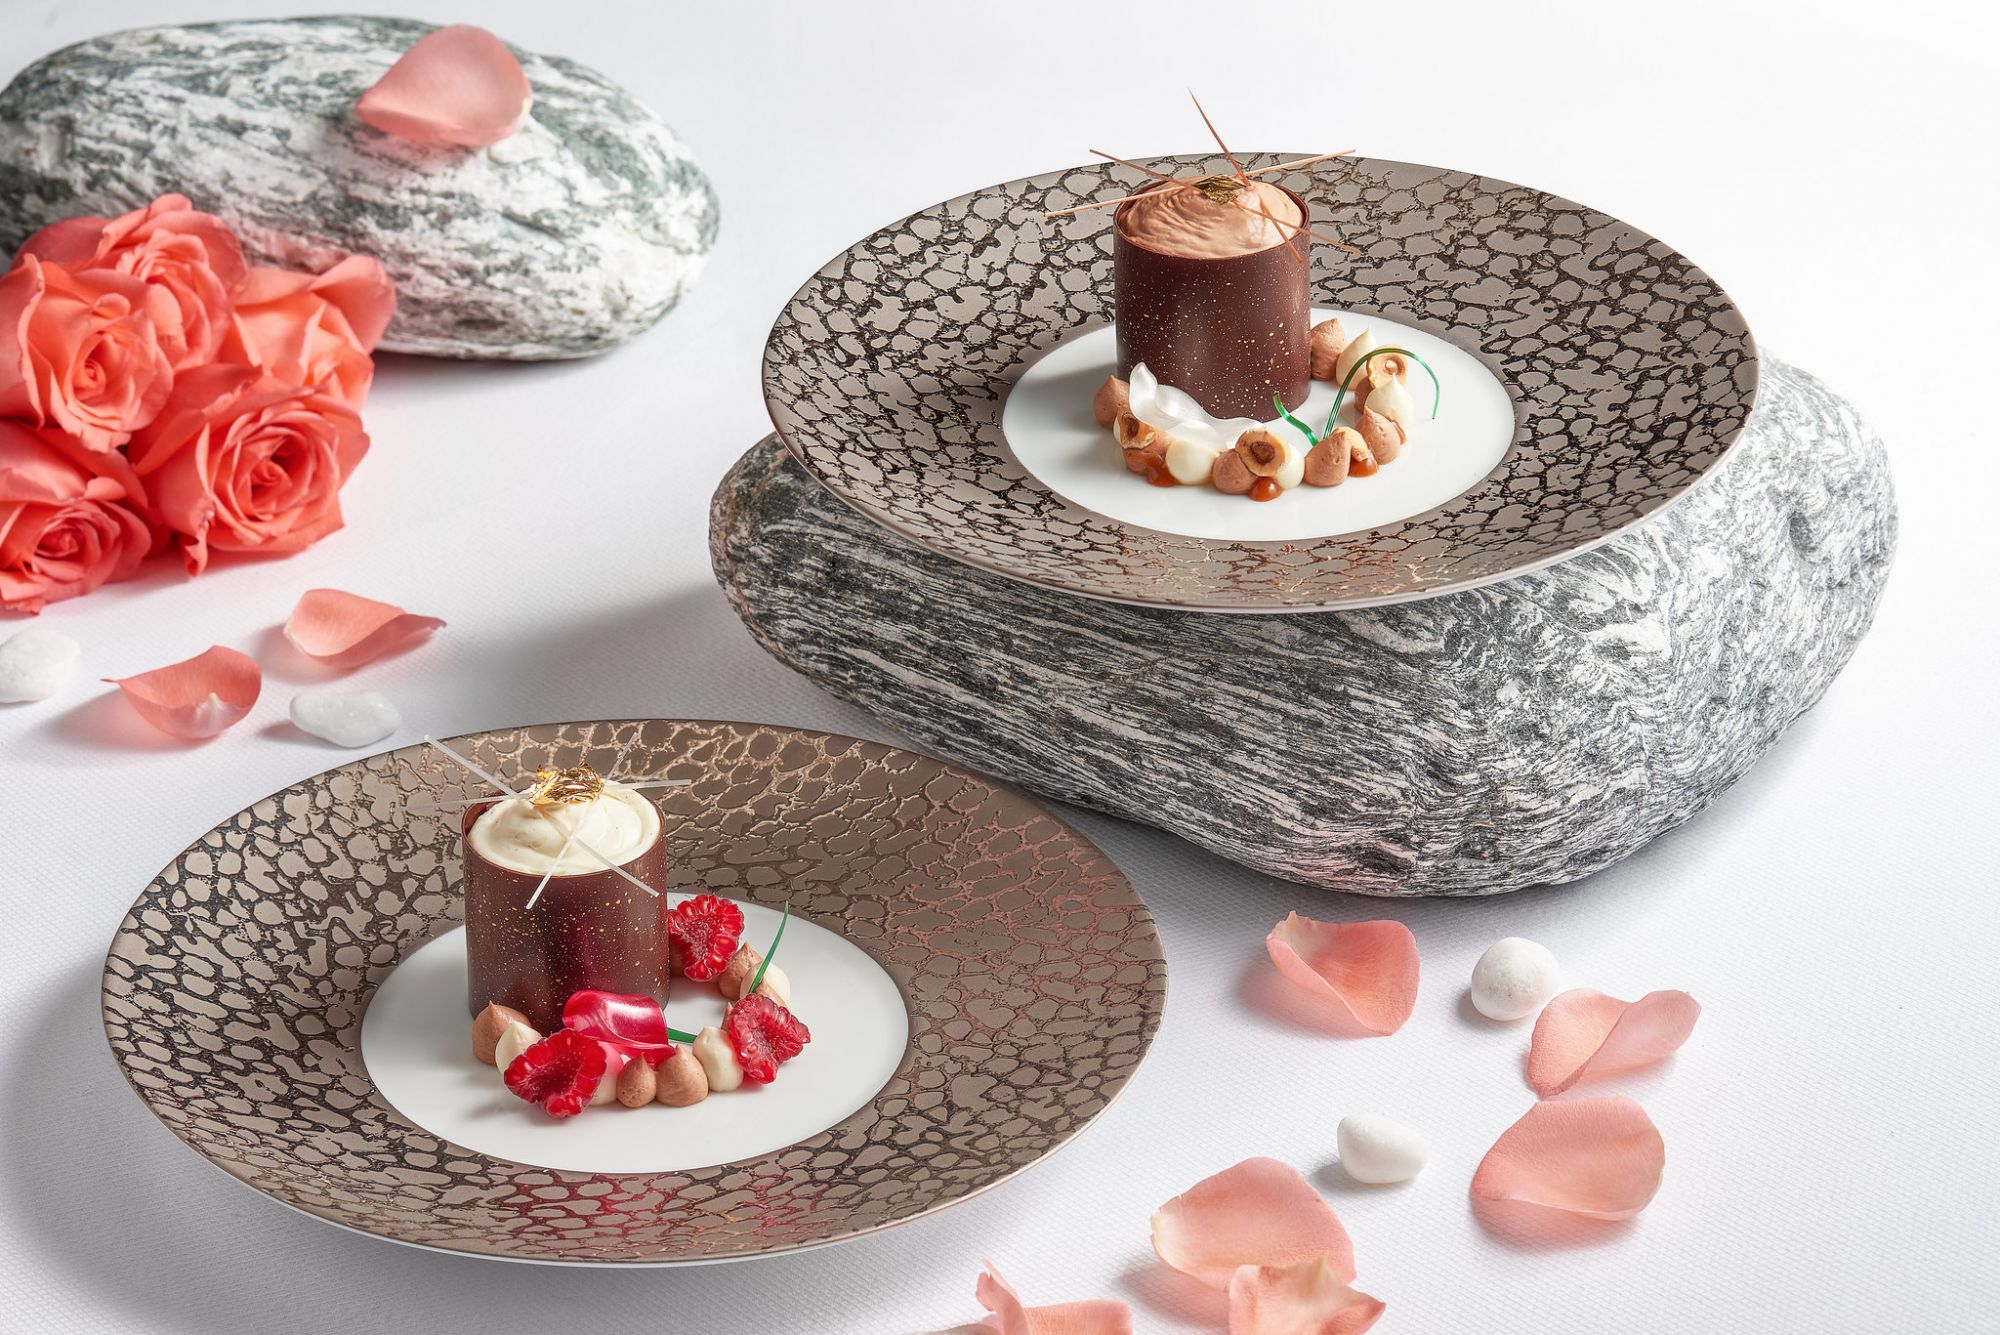 Valentine's Day 2020: Romantic Dinners In Hong Kong To Impress Your Date